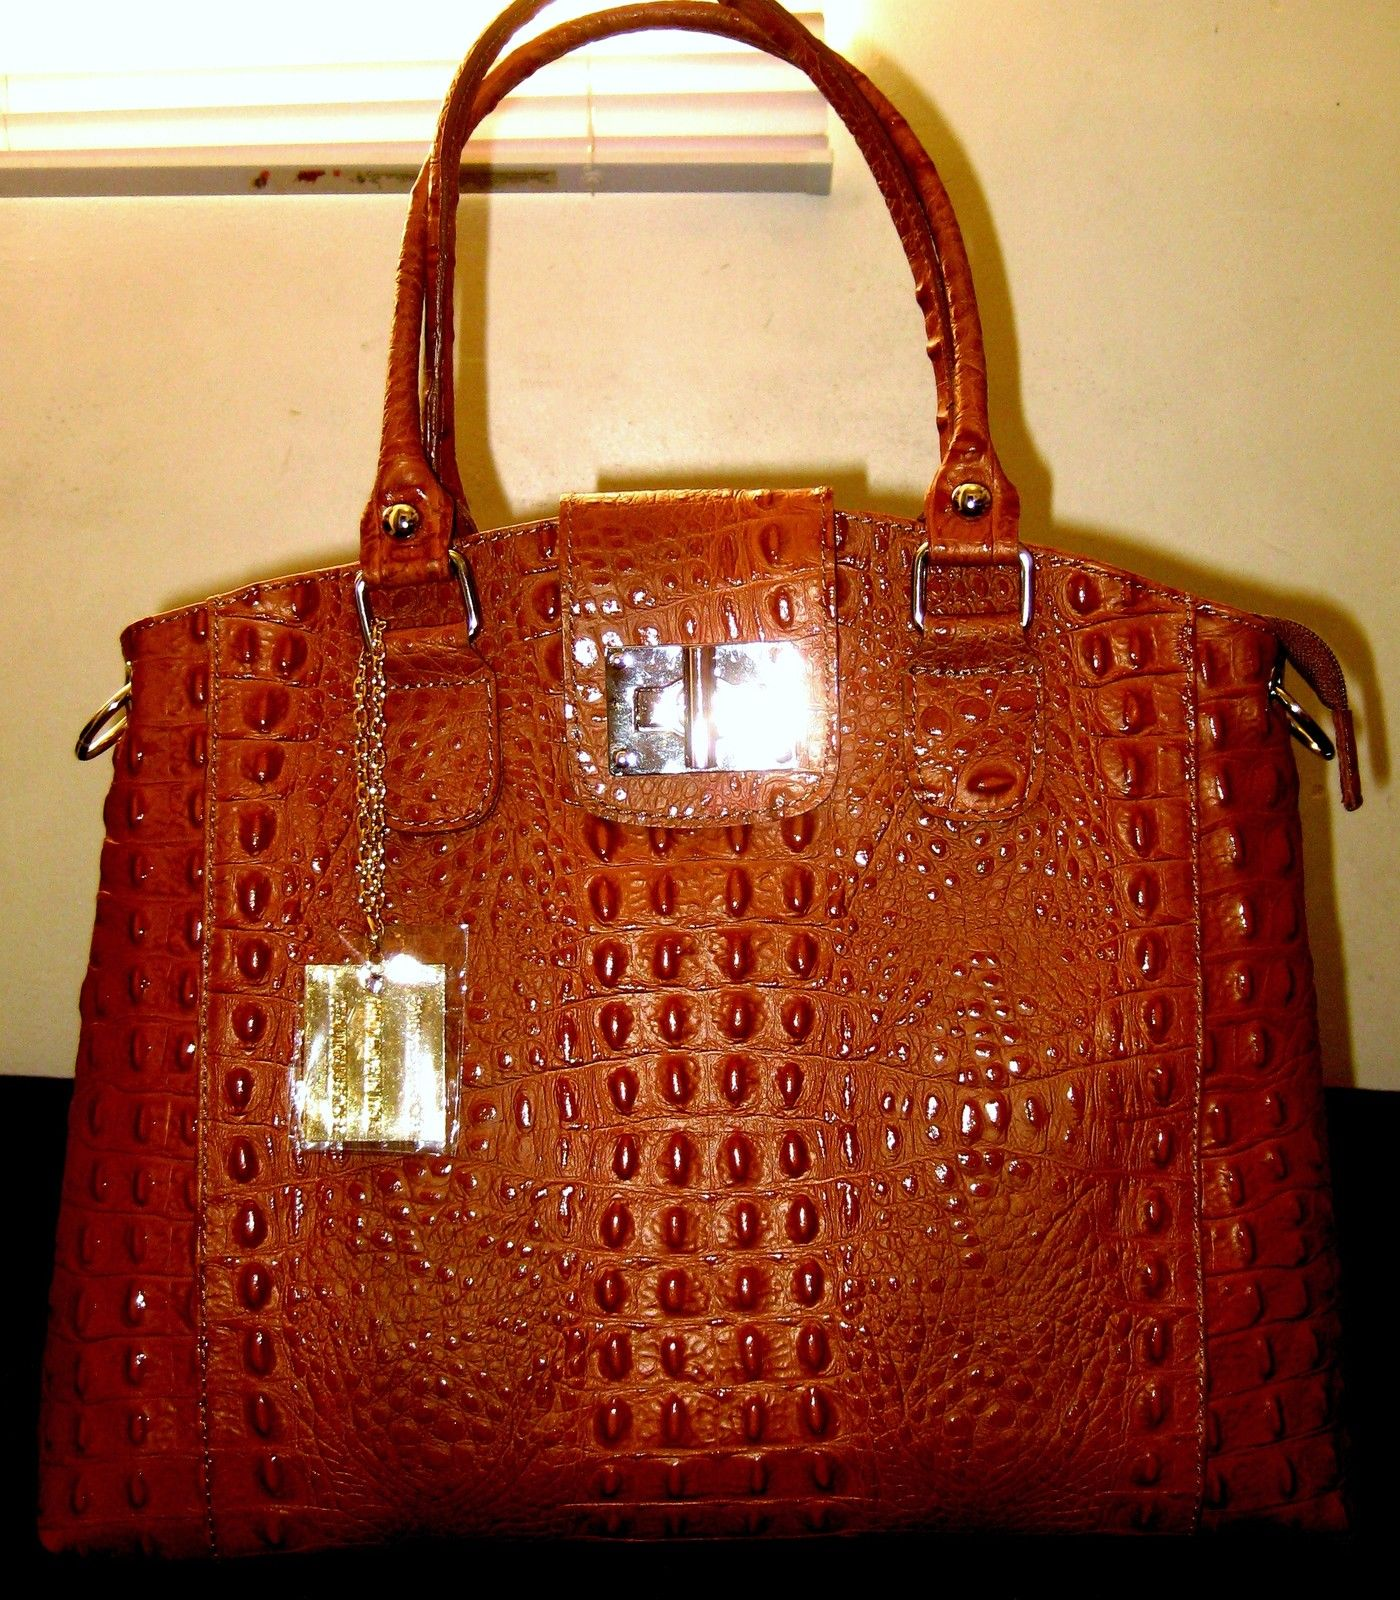 100% GENUINE ITALIAN COW LEATHER BAG IN CROCODILE STYLE- NELSON MONUMENT-COGNAC